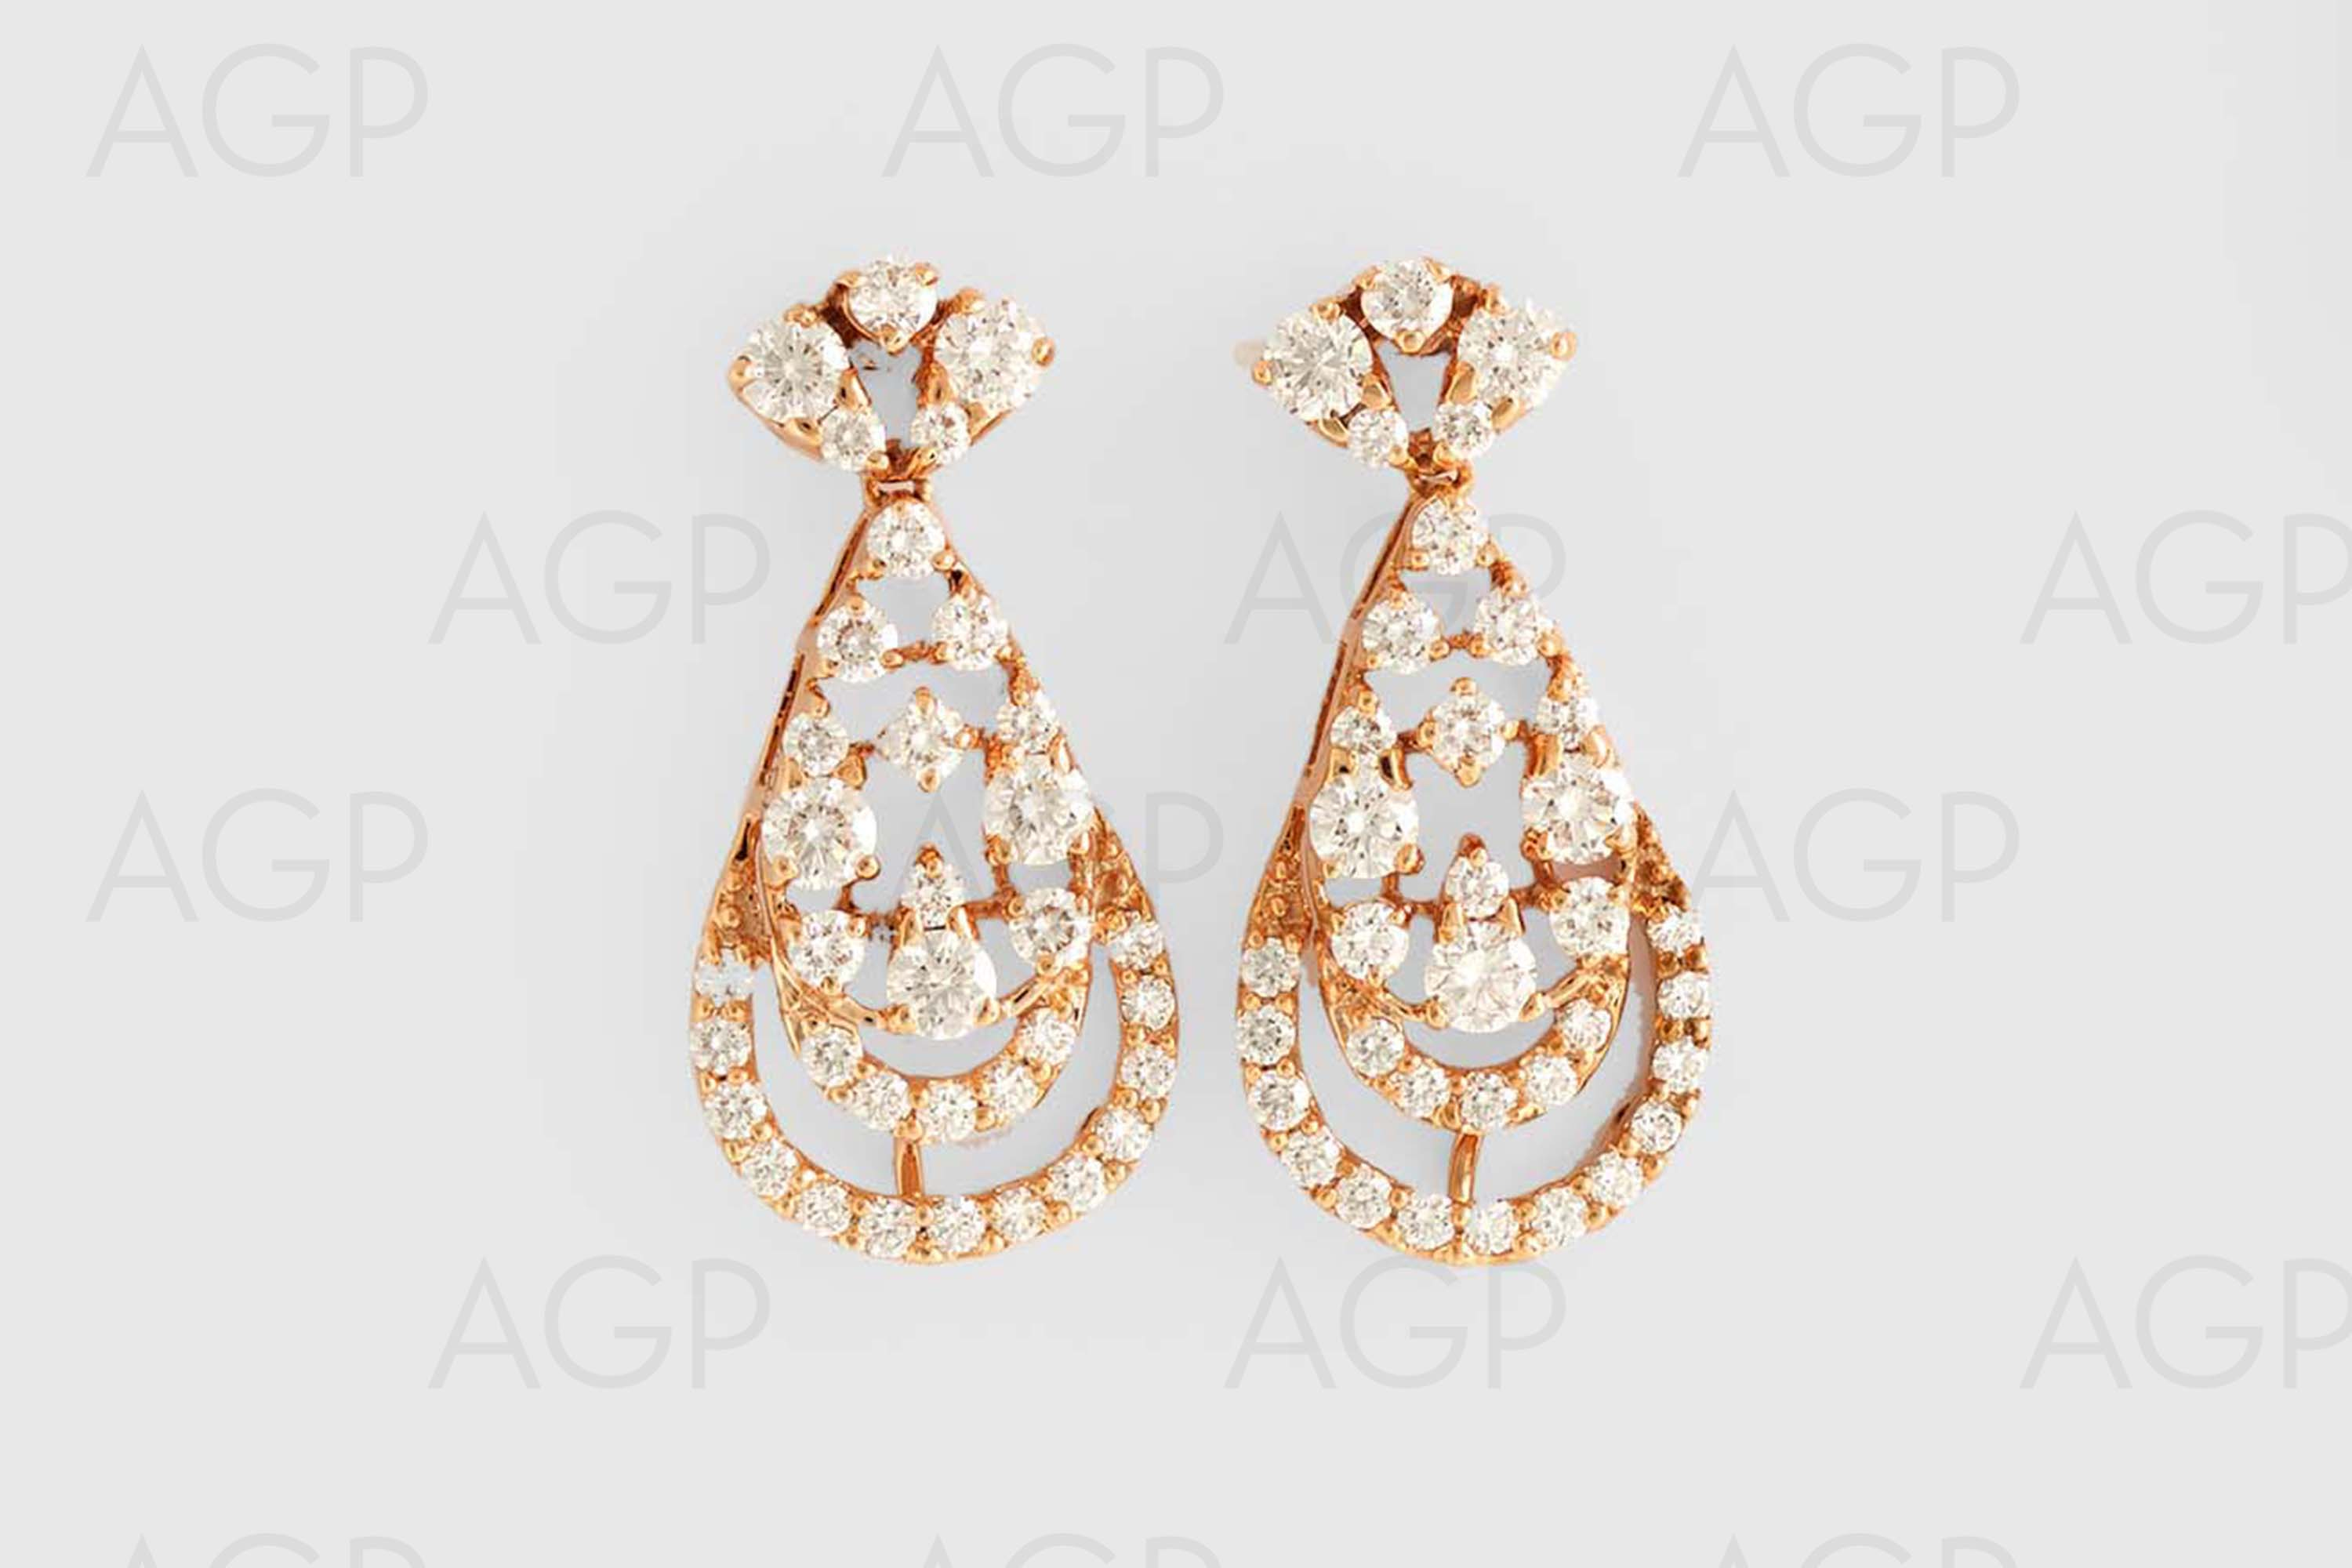 gold collection best has diamond earrings traditional jewellery to the vummidi stones perfection of rings pin for handcrafted beautiful is so looking and this